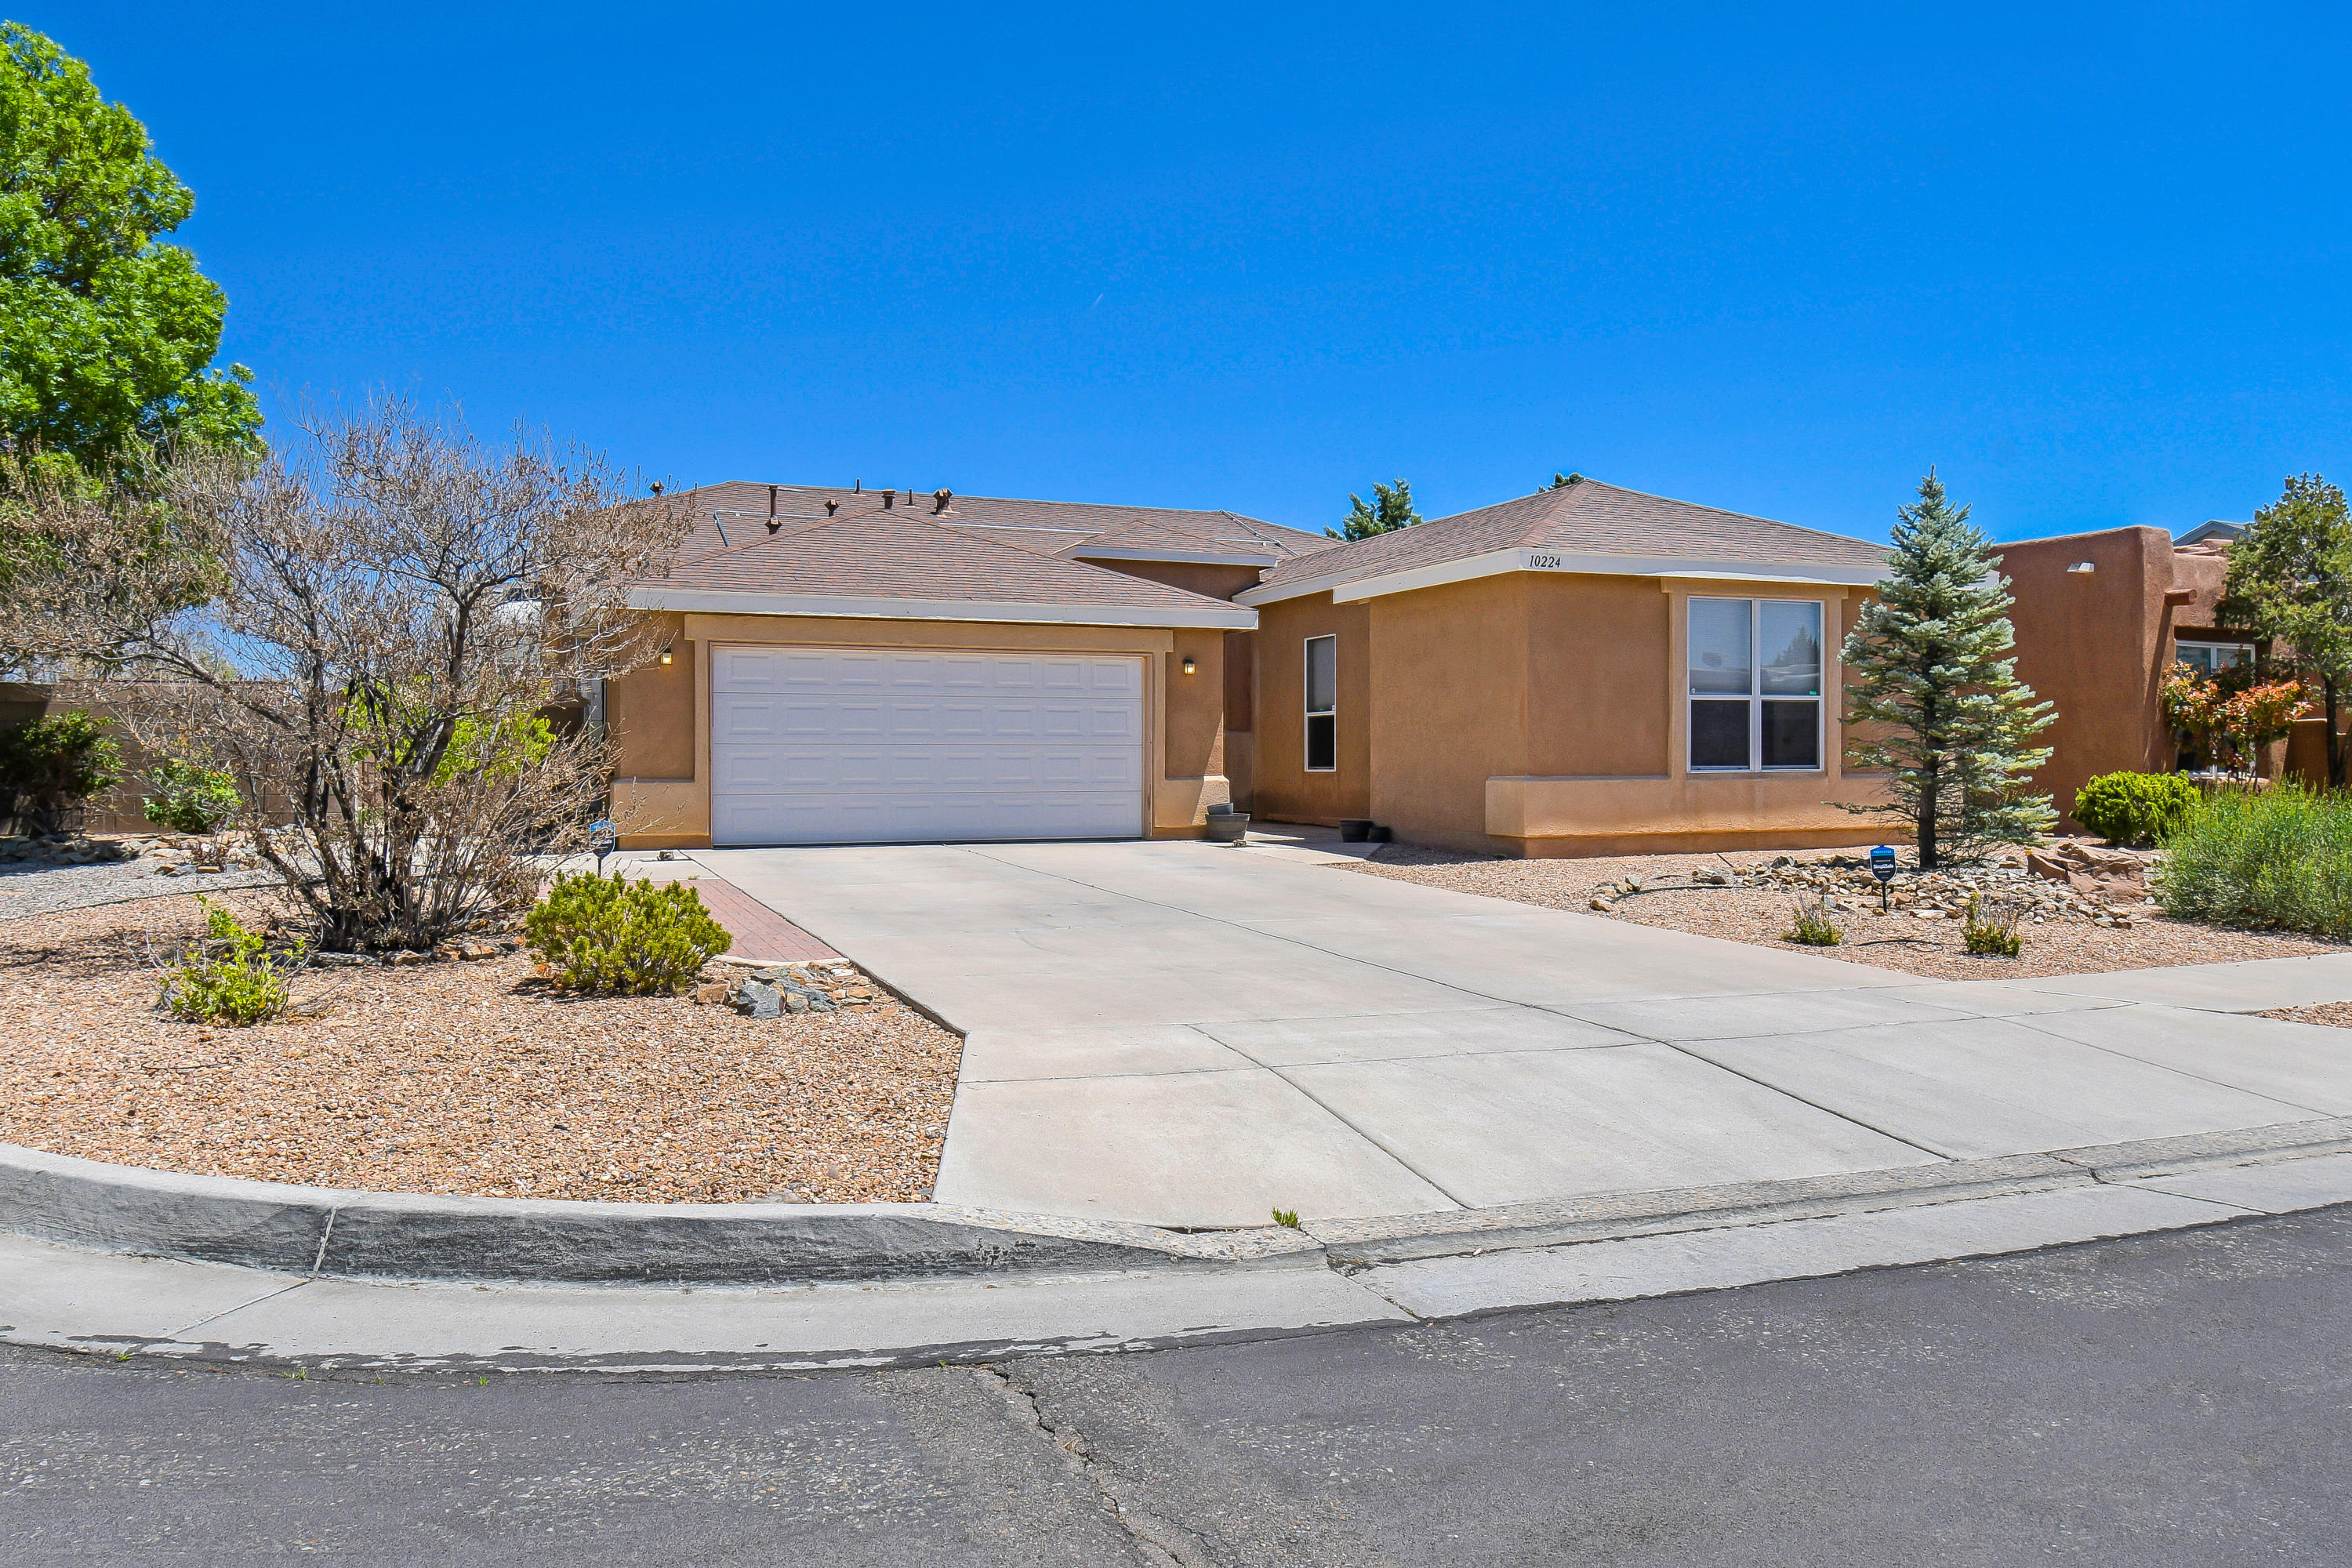 You don't want to miss this one! Open floor plan, large living room with built-in entertainment center, ceramic tile floors, ceiling fans, kitchen has plenty of counter space including a large island with sink, upgrades, master bedroom is separate from the other bedrooms and has double sinks, a large walk in shower and closet fully landscaped, backyard access with RV pad and storage shed, corner cul-de-sac lot with direct access to community walking paths.